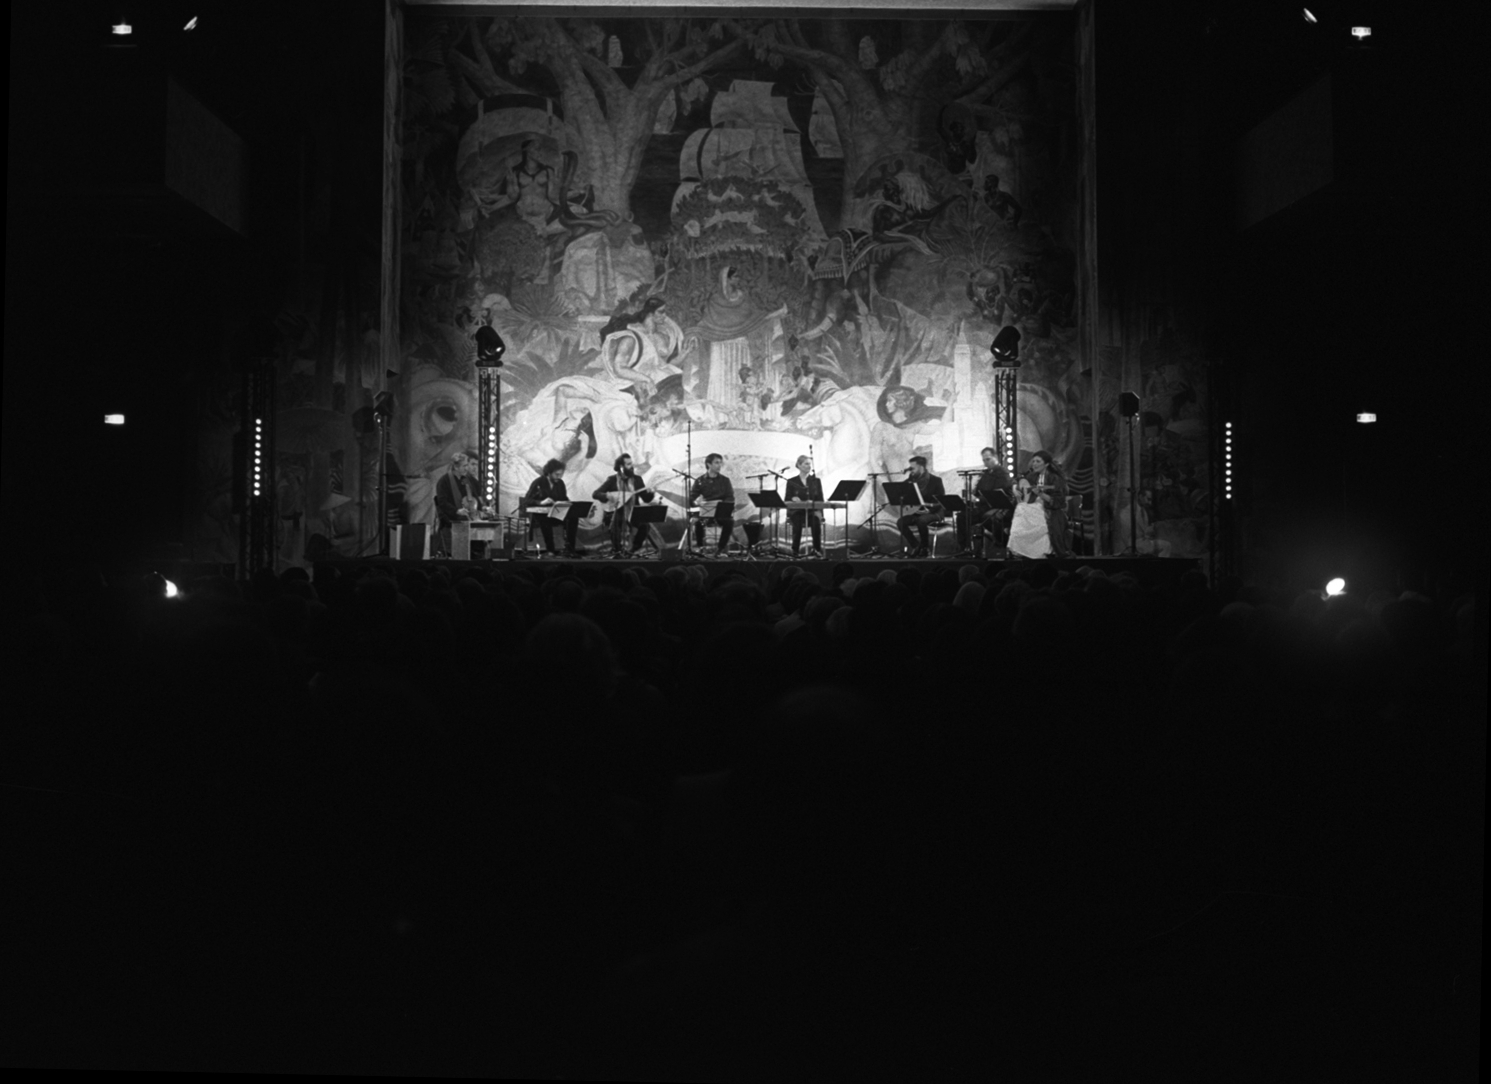 – Concert – World Refugee Day at Saint-Denis with Jordi Savall